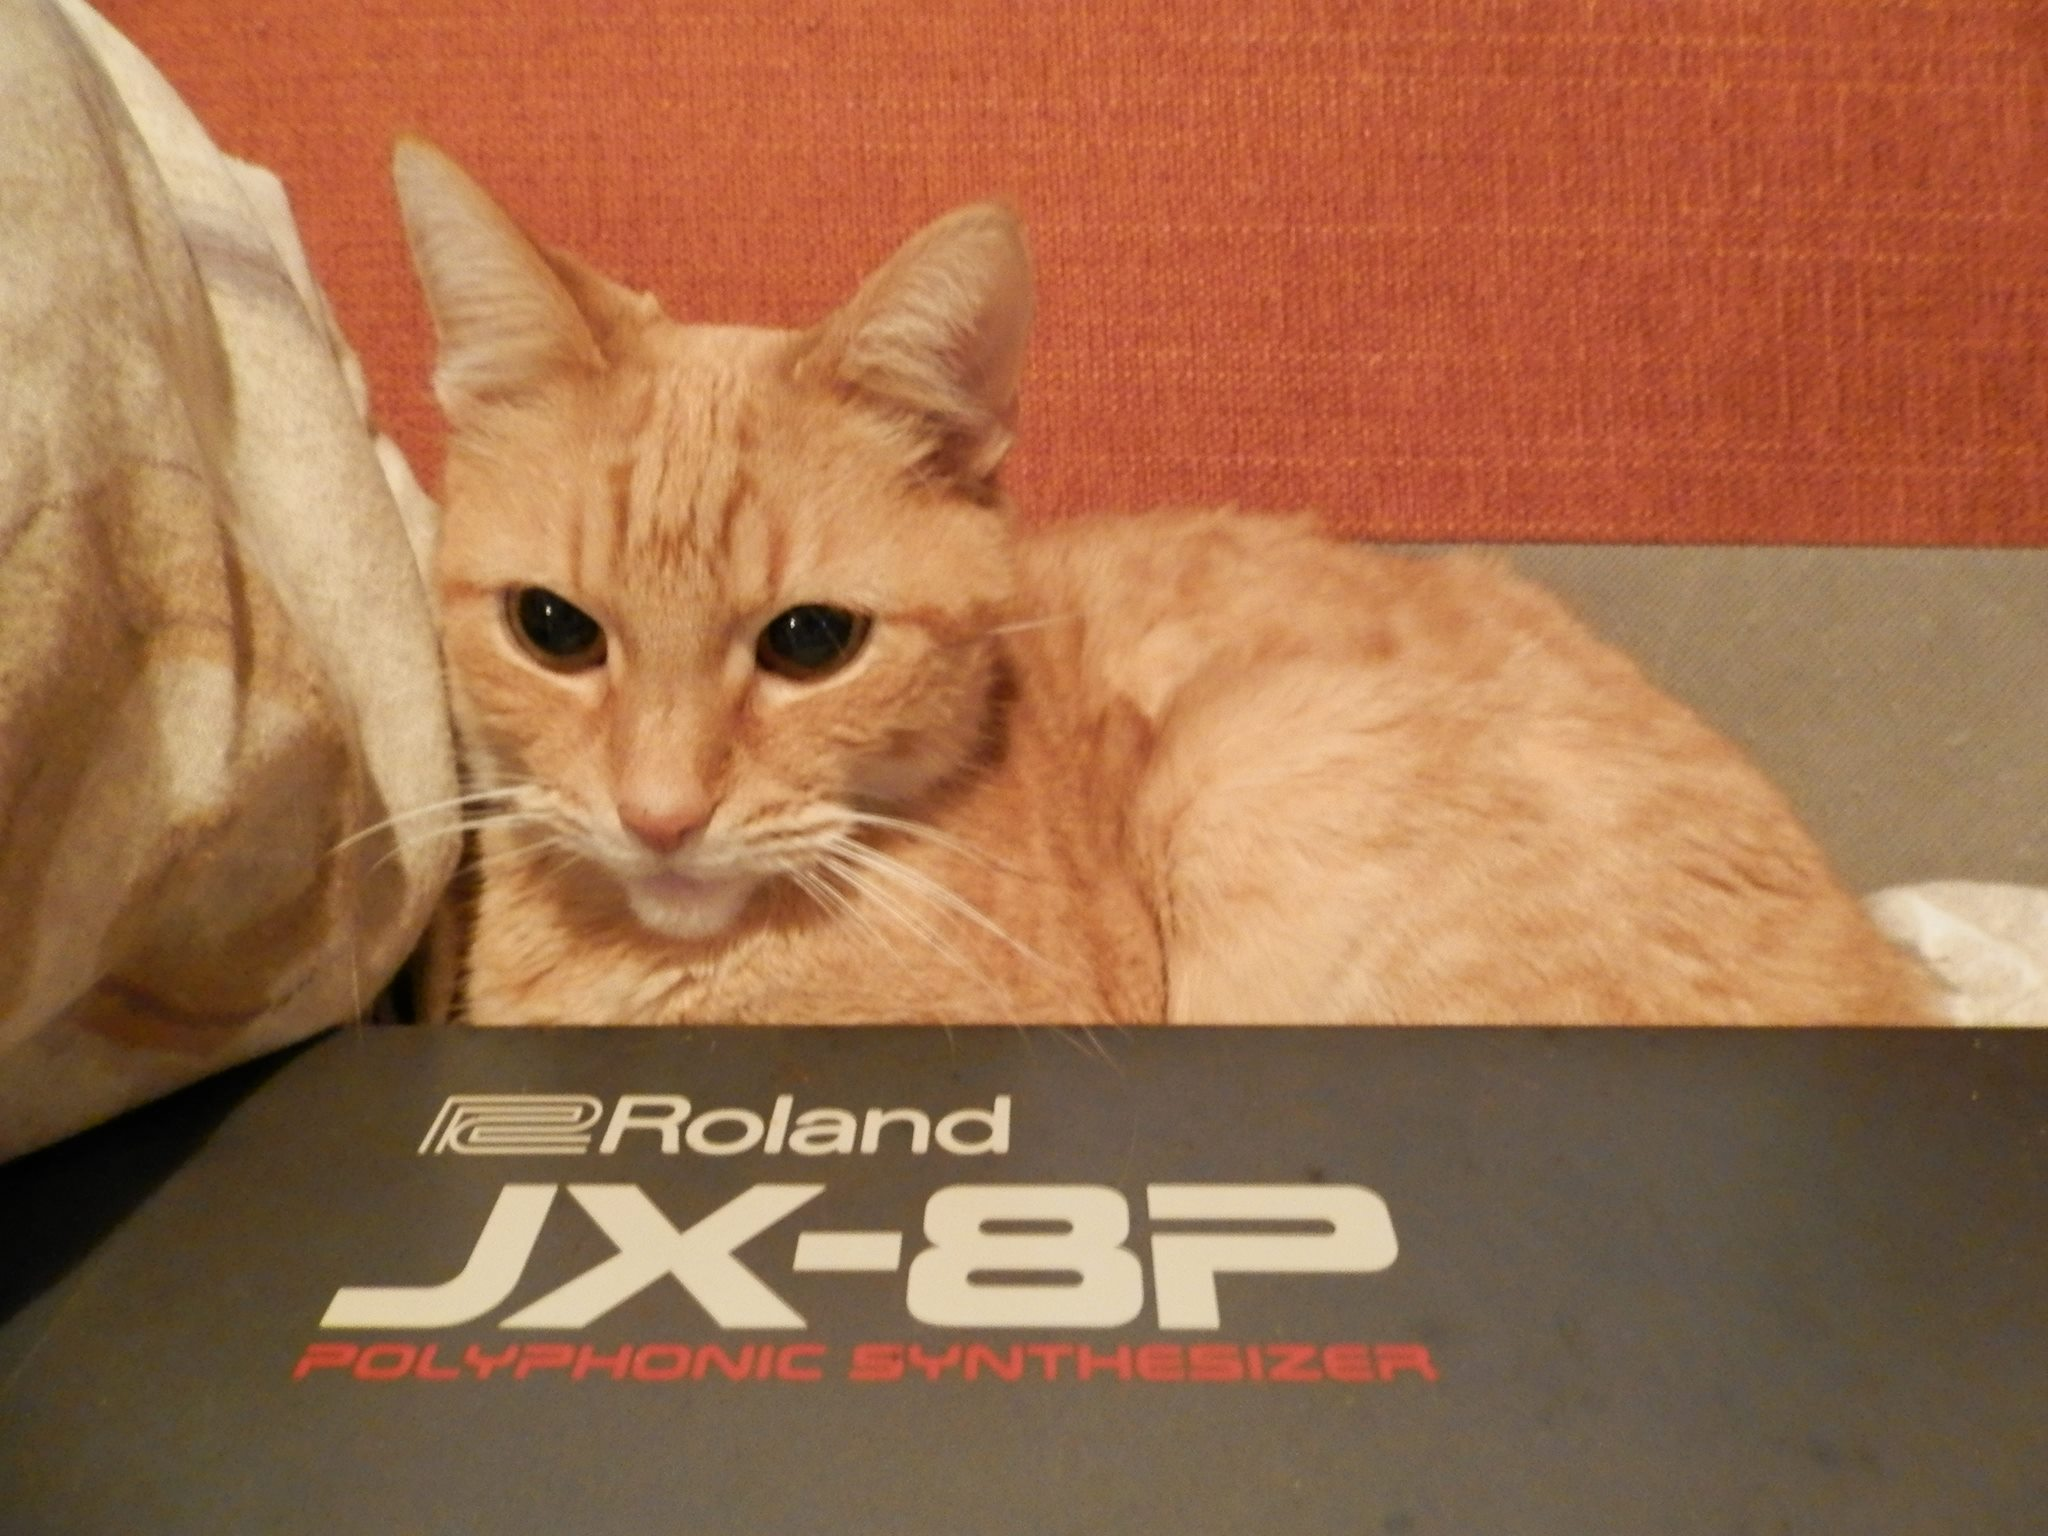 CatSynth Pic: Miep and Roland JX8P